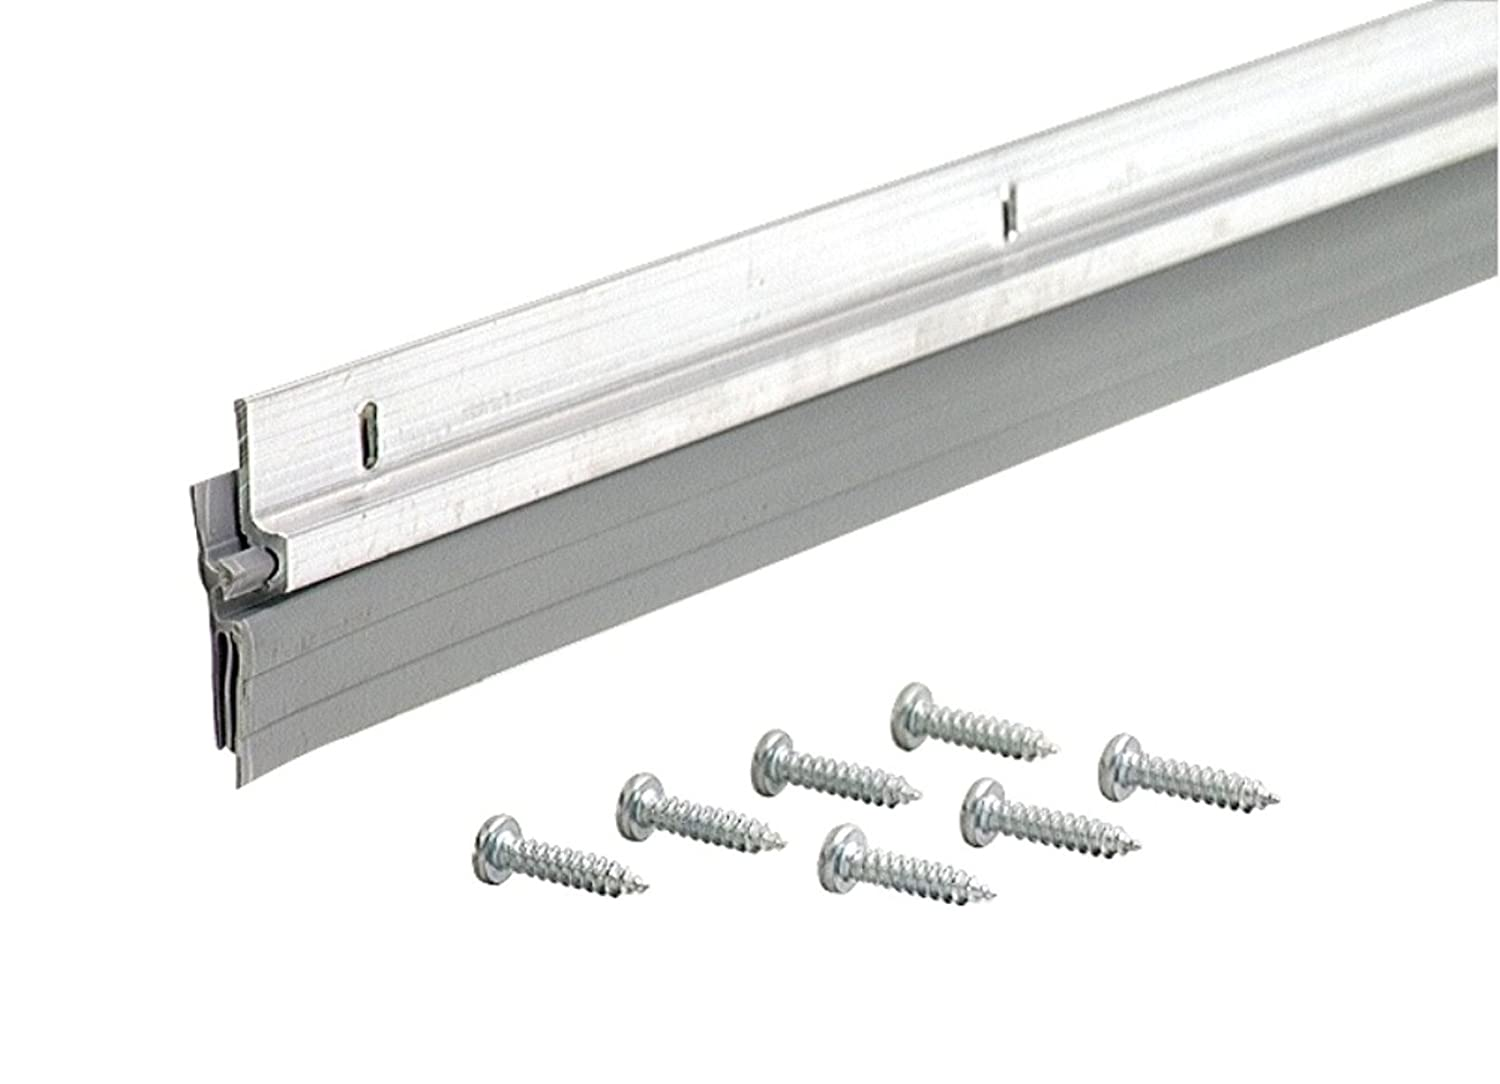 M-D Building Products 5090 Triple Fin Door Sweep DV-1 36-Inch Silver - Pocket Door Hardware - Amazon.com